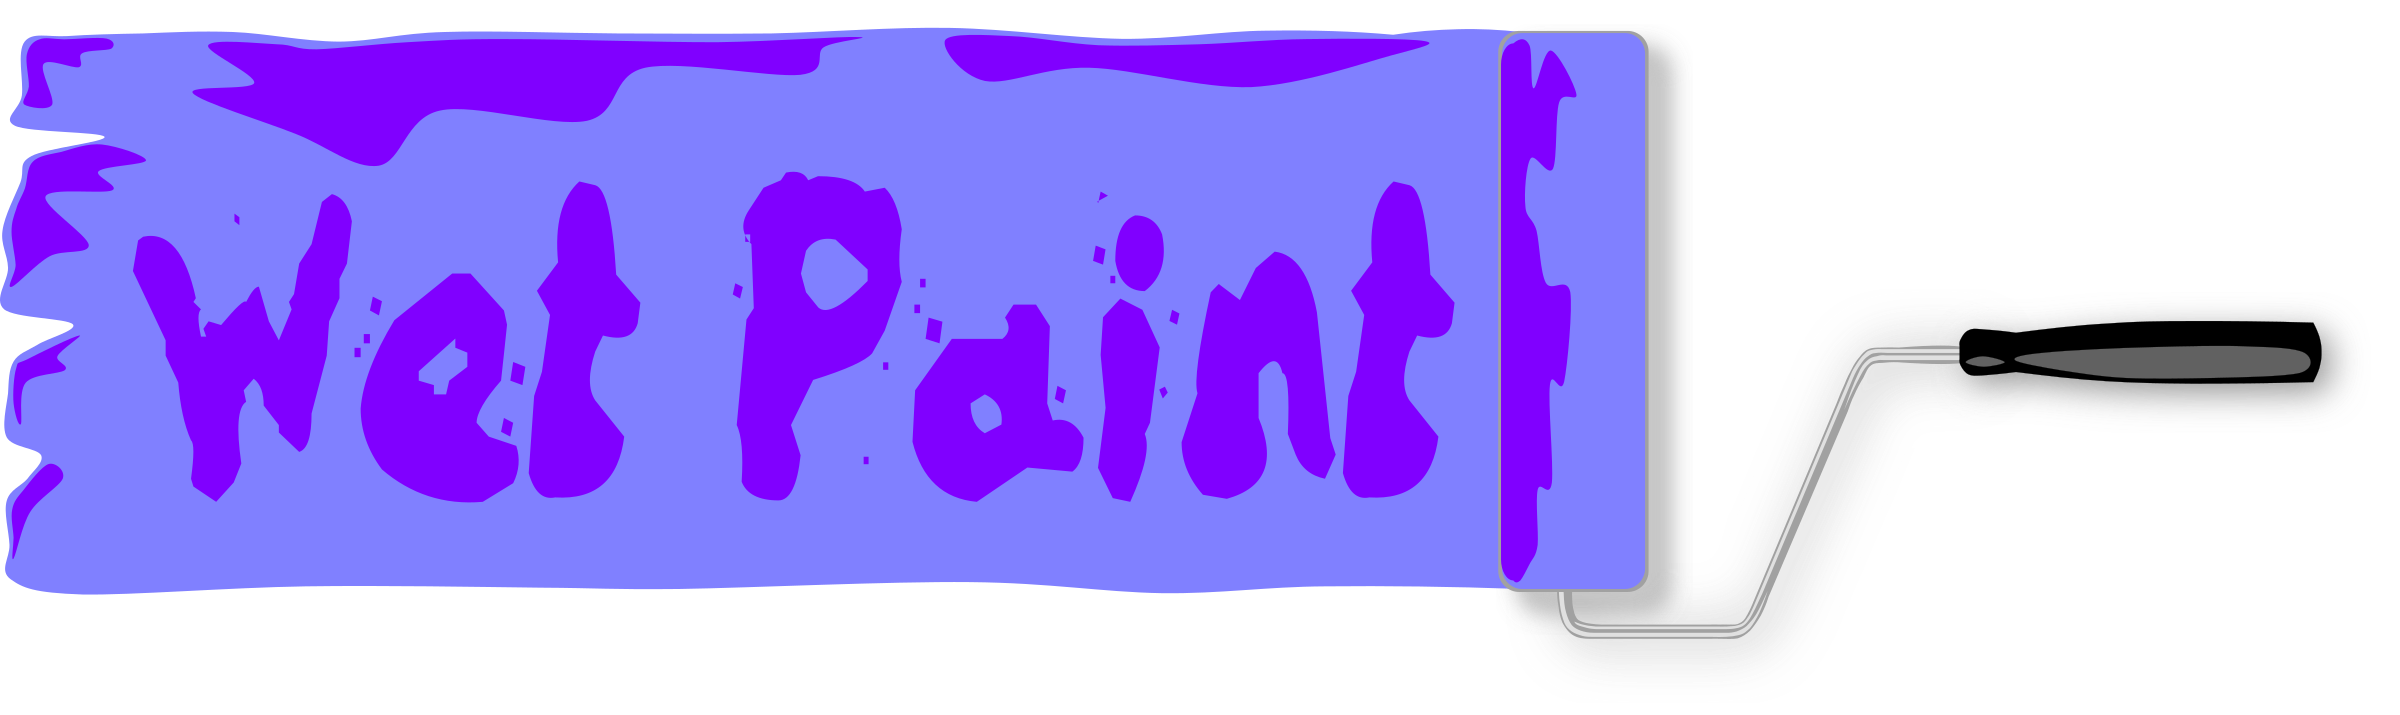 Paint sign icons png. Wet clipart slippery floor